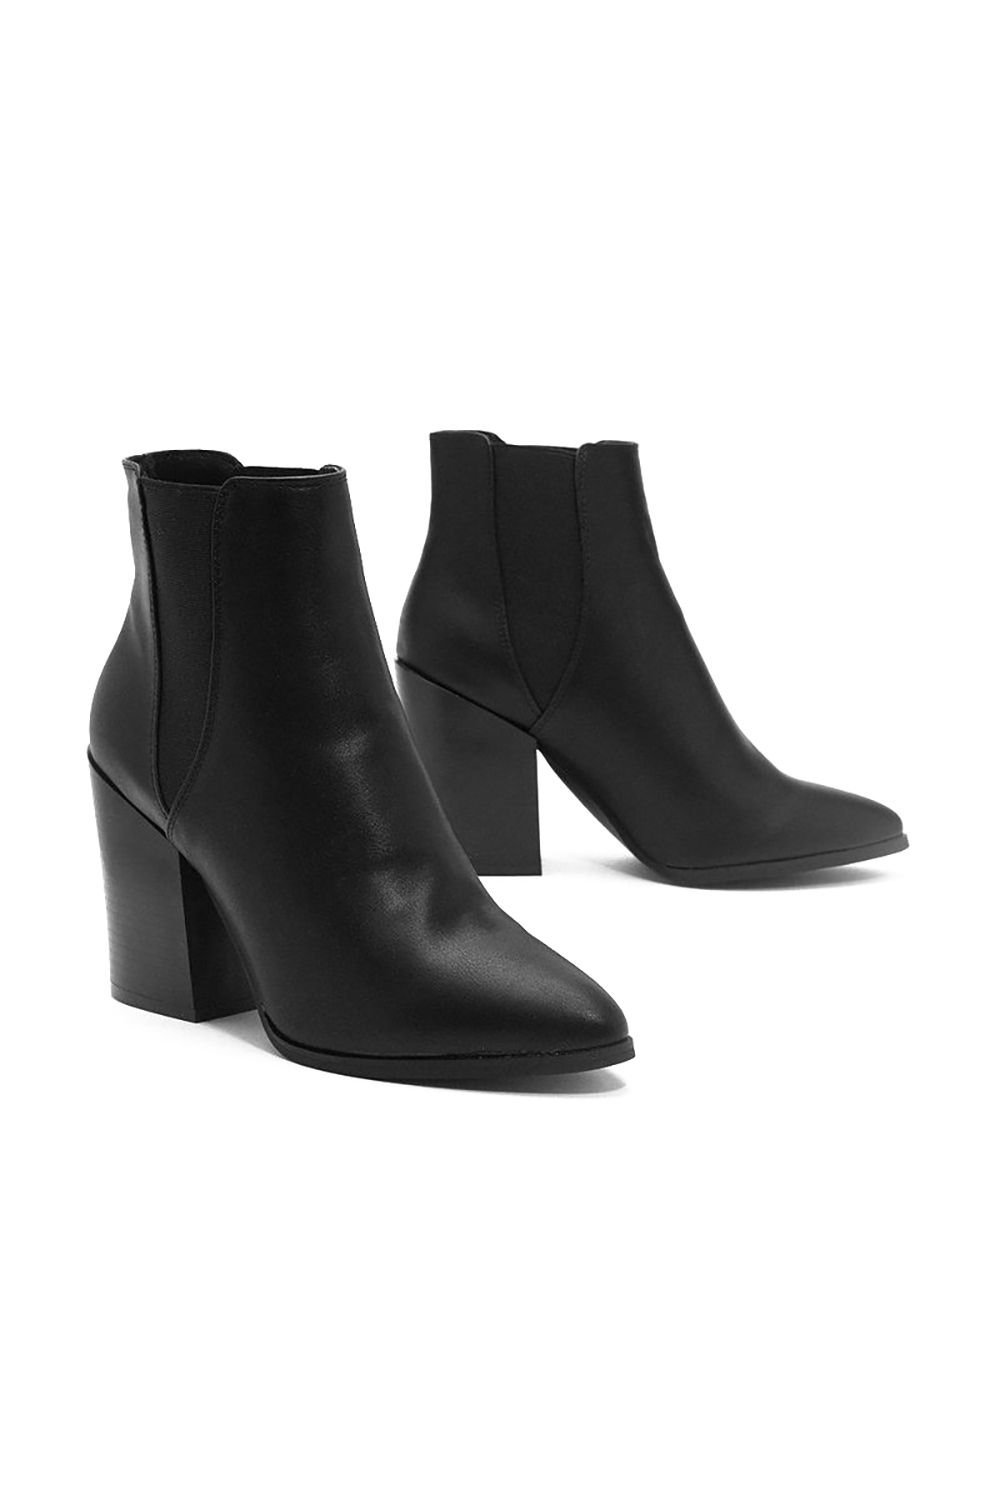 Year-Round Booties Nastygal, $35 SHOP IT The great thing about a black pair of boots is that you can where them literally all the time.